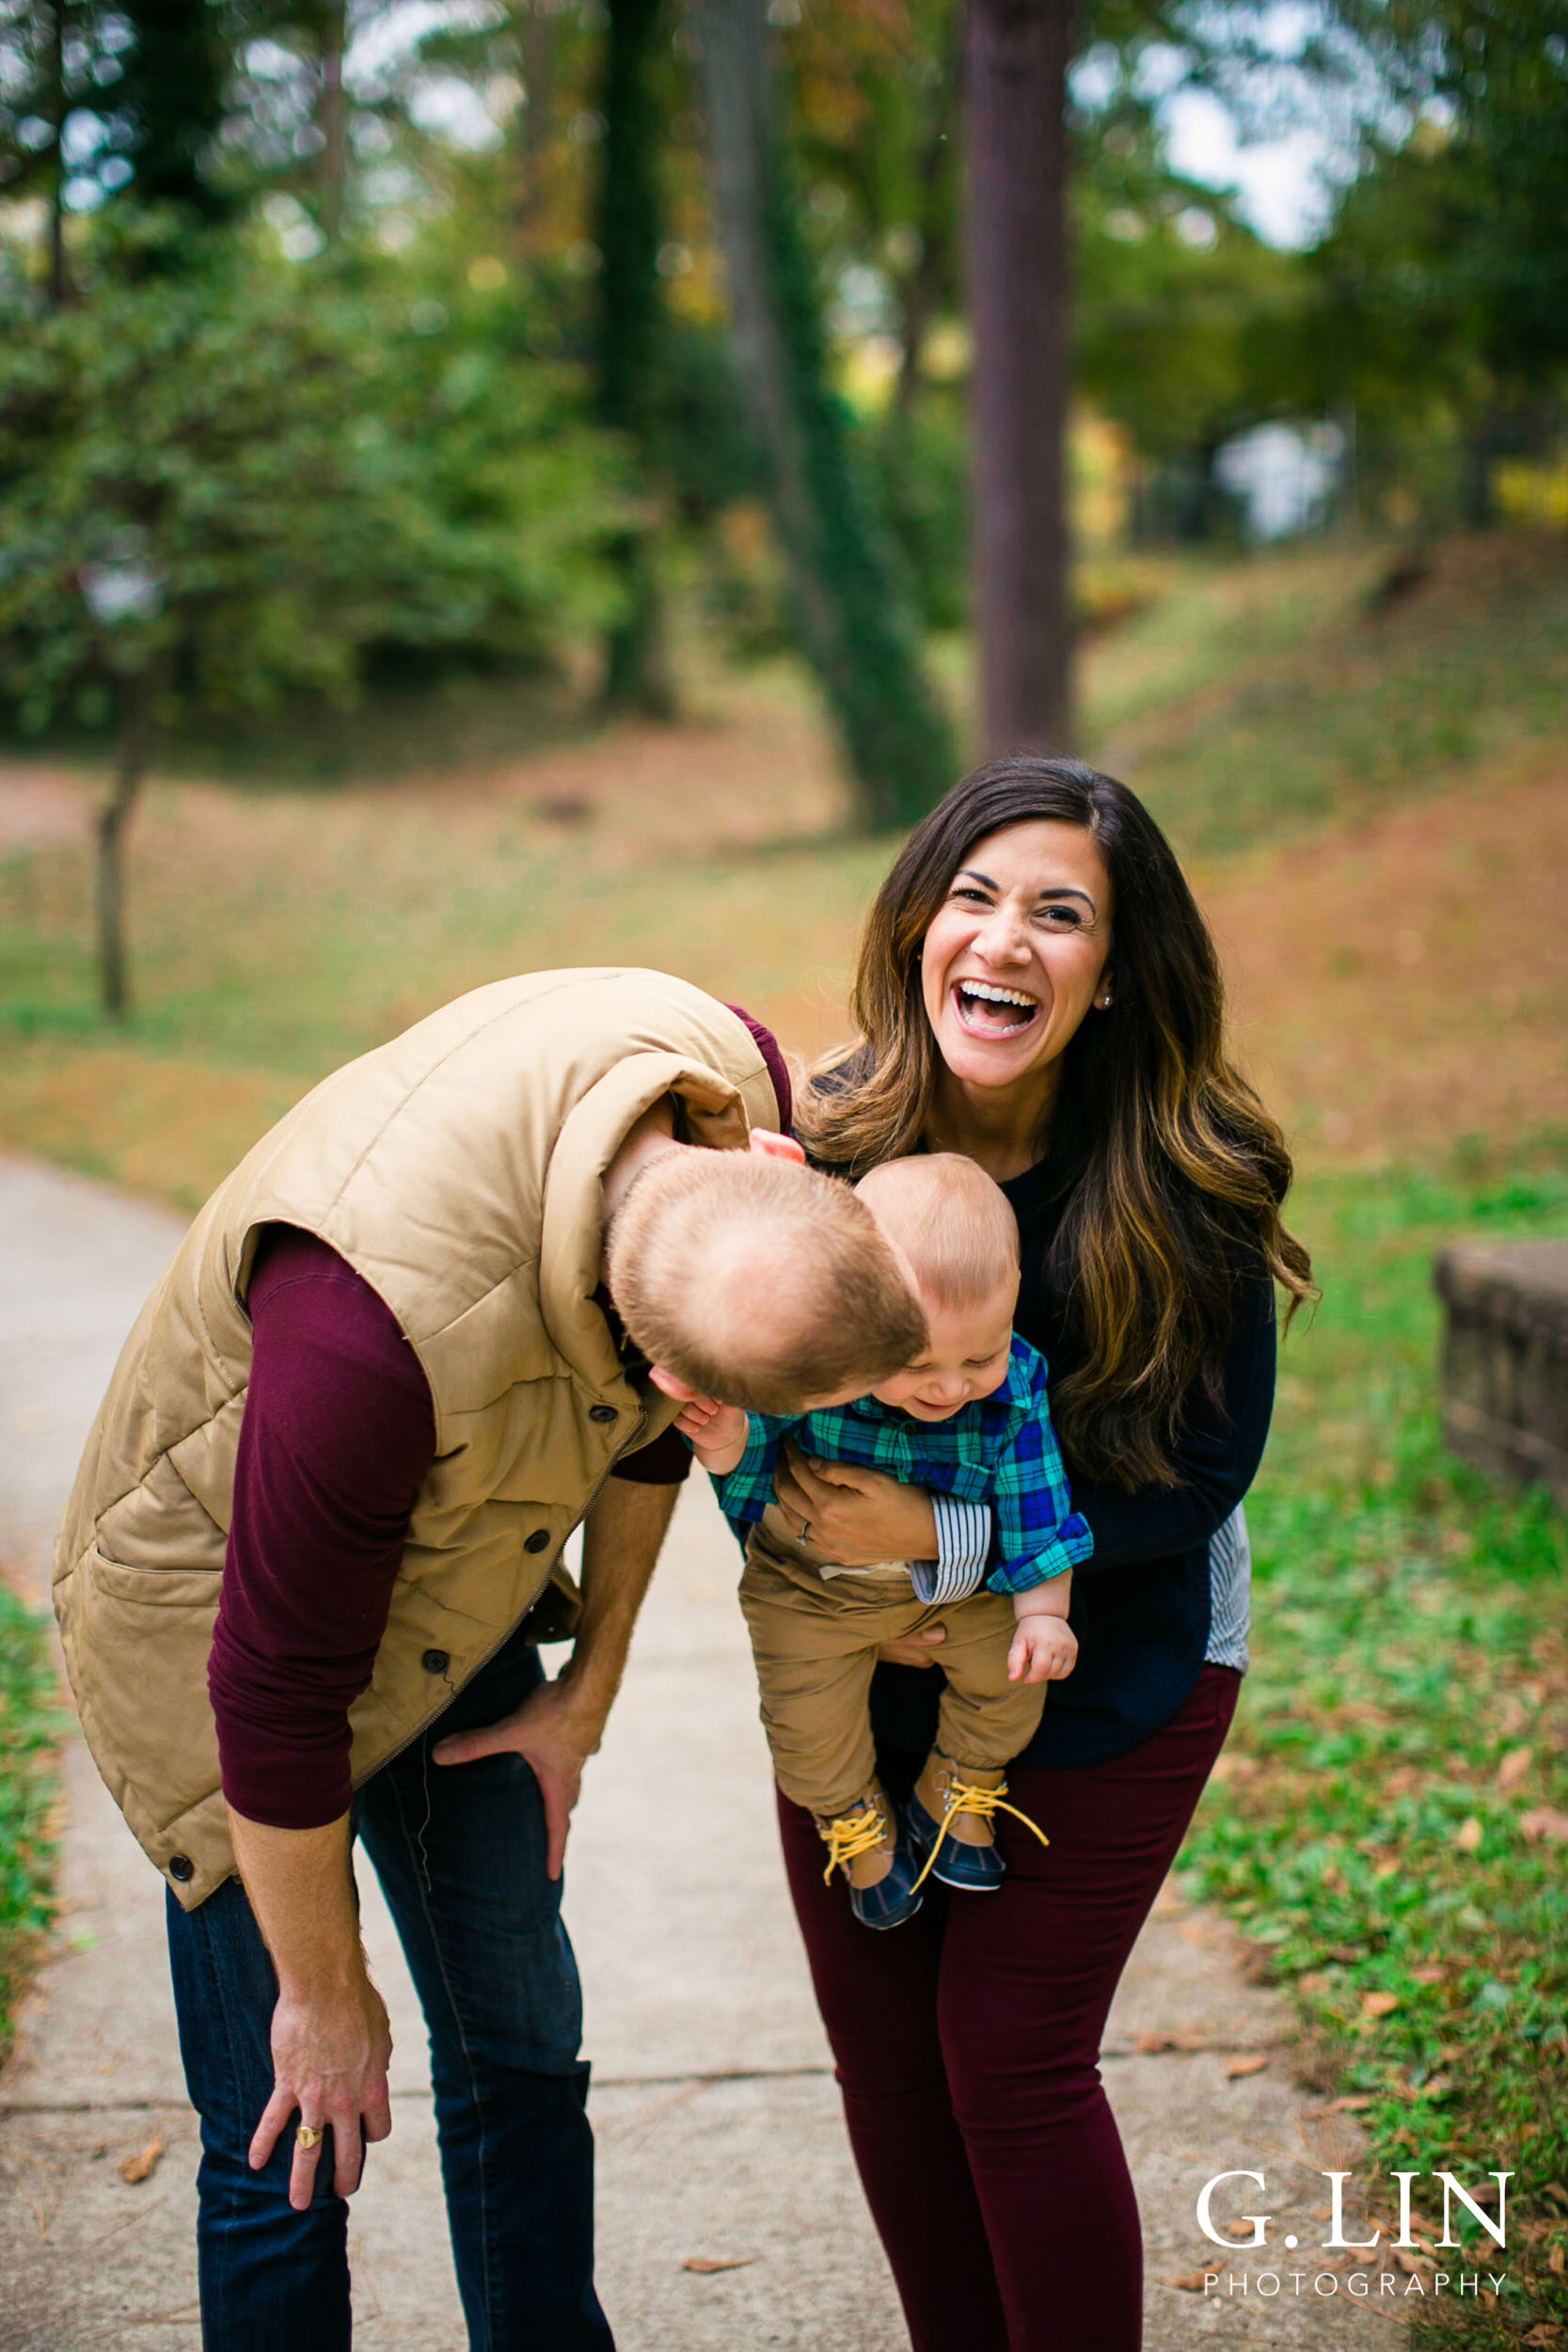 Durham Family Photographer | G. Lin Photography | candid moment of family having fun